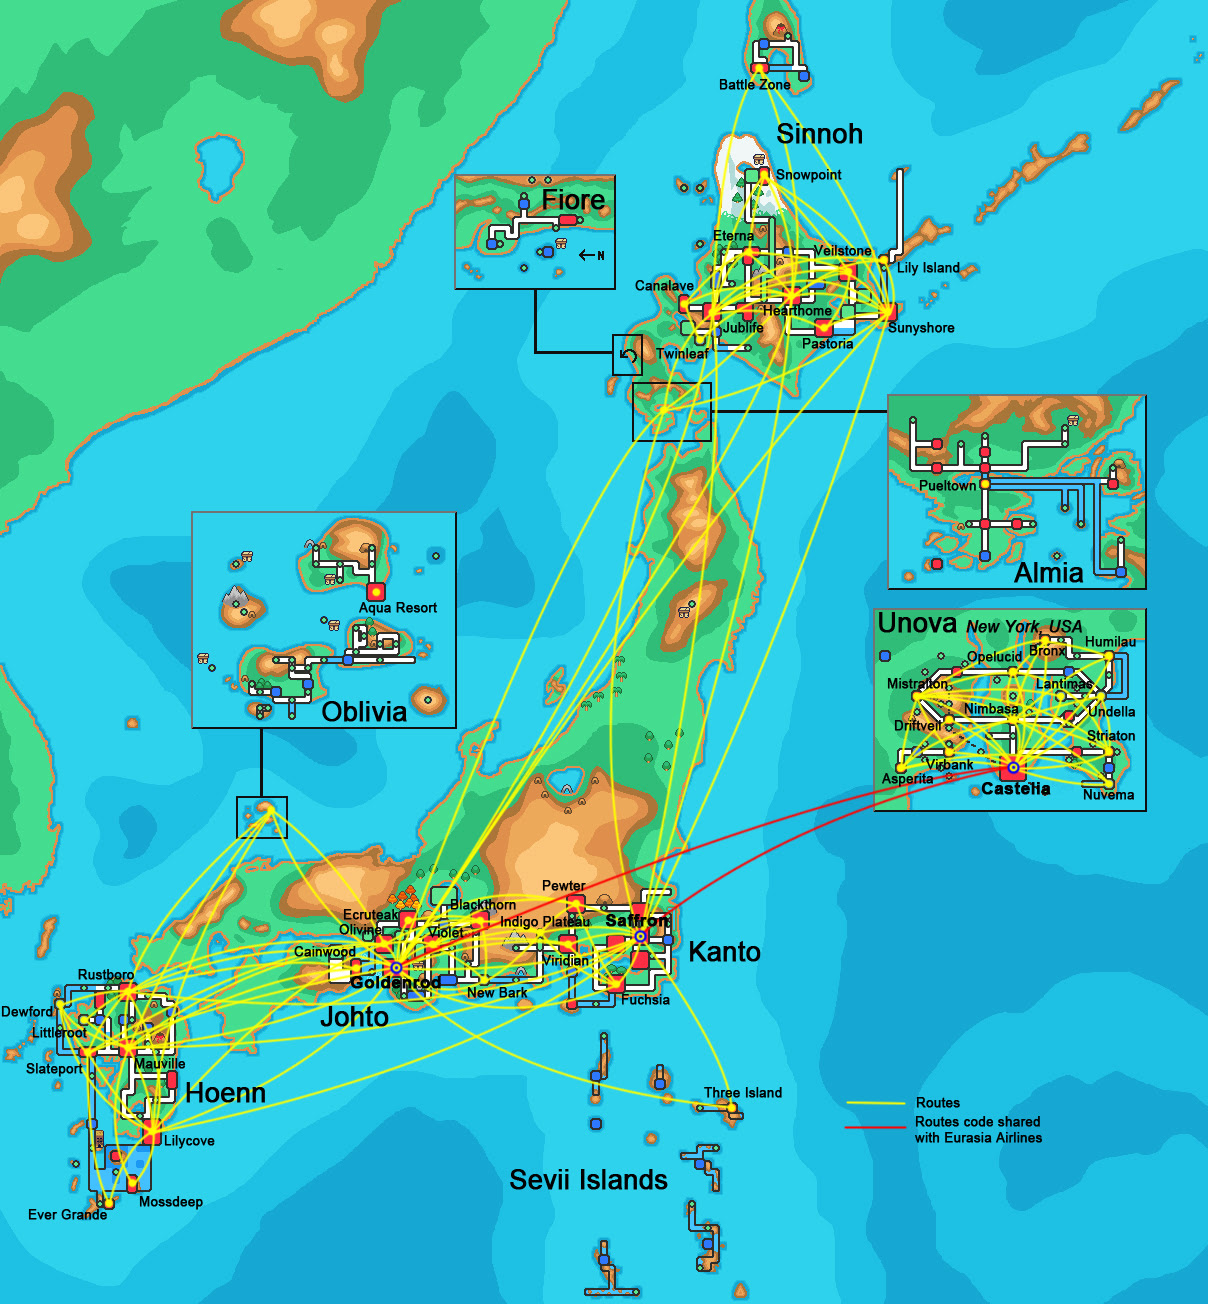 Pin all pokemon regions world map on pinterest pokemon map of all regions including unova pokemon airlines route map gumiabroncs Image collections